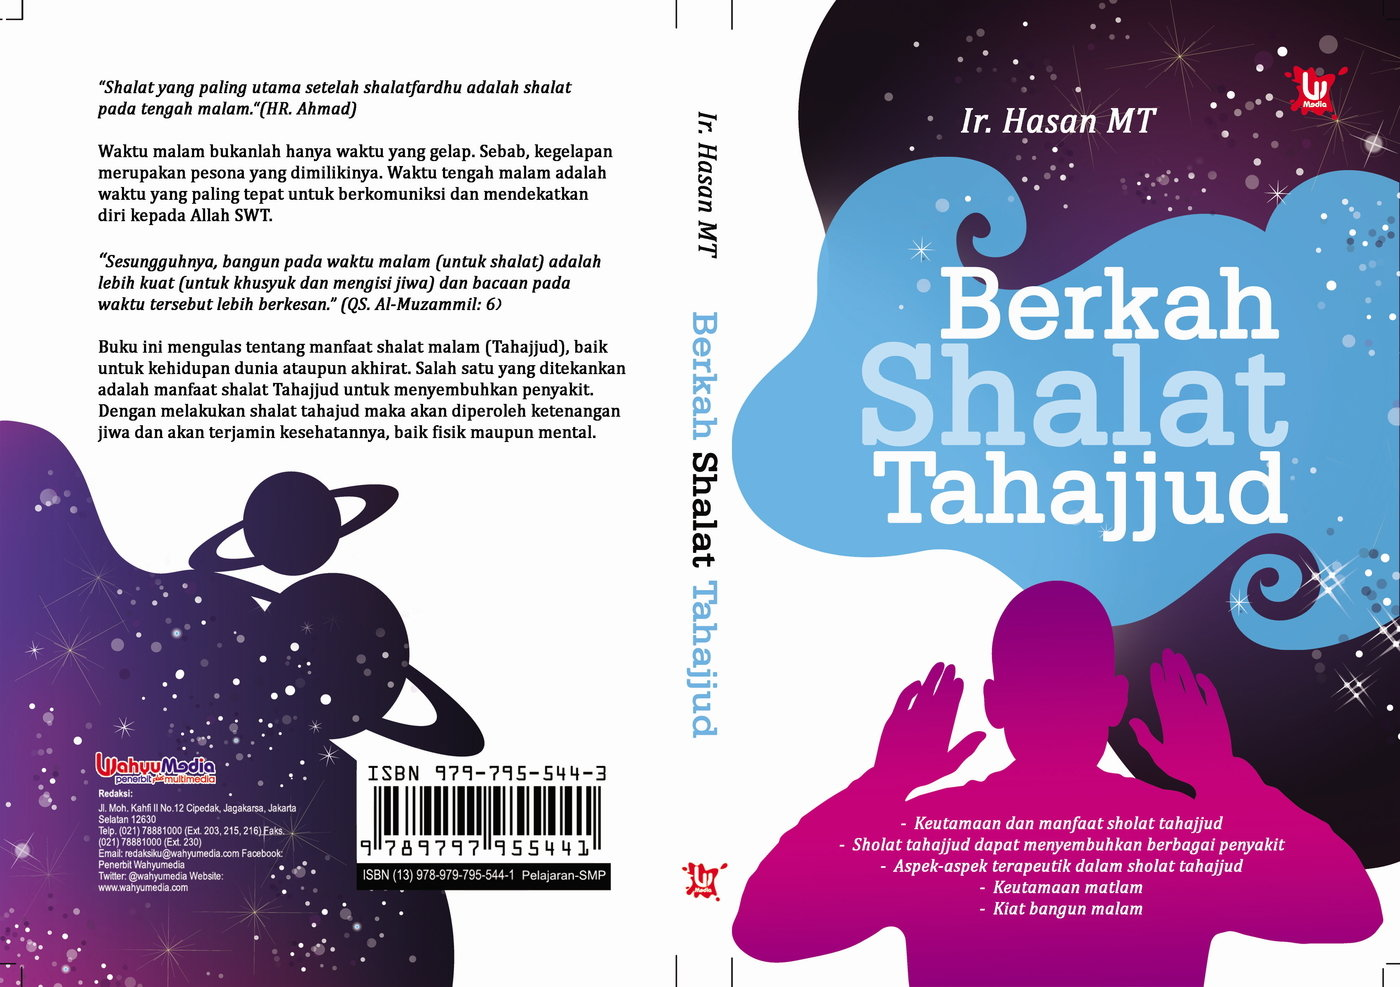 Cover book project 2012 by norma aisyah at coroflot tahajjud alternative cover 3 didnt accepted stopboris Image collections